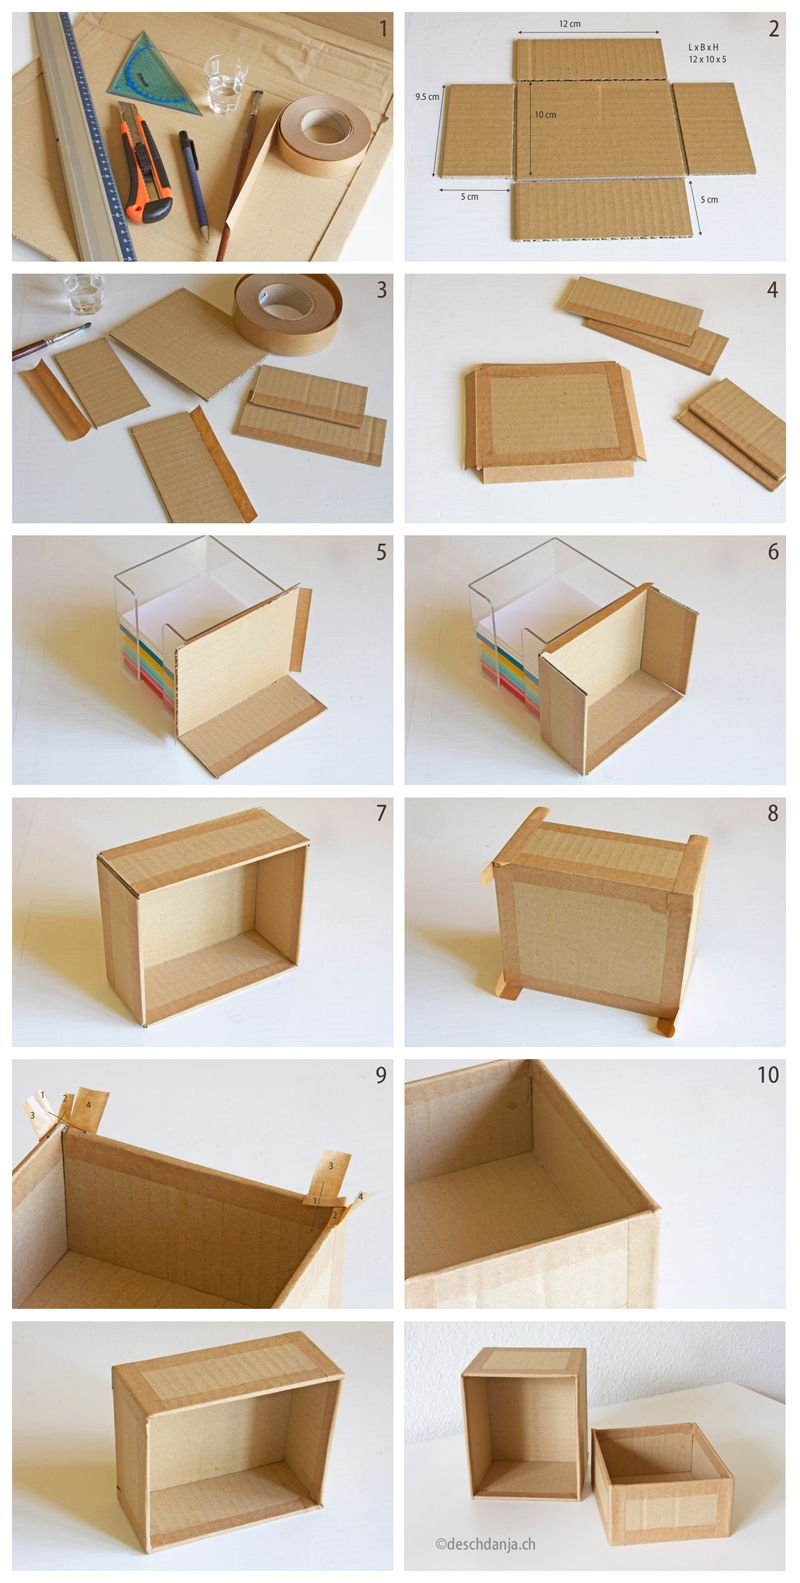 Recycling Möbel Selber Bauen How To Make Your Own Cardboard Box Deschdanja Ch Organizer